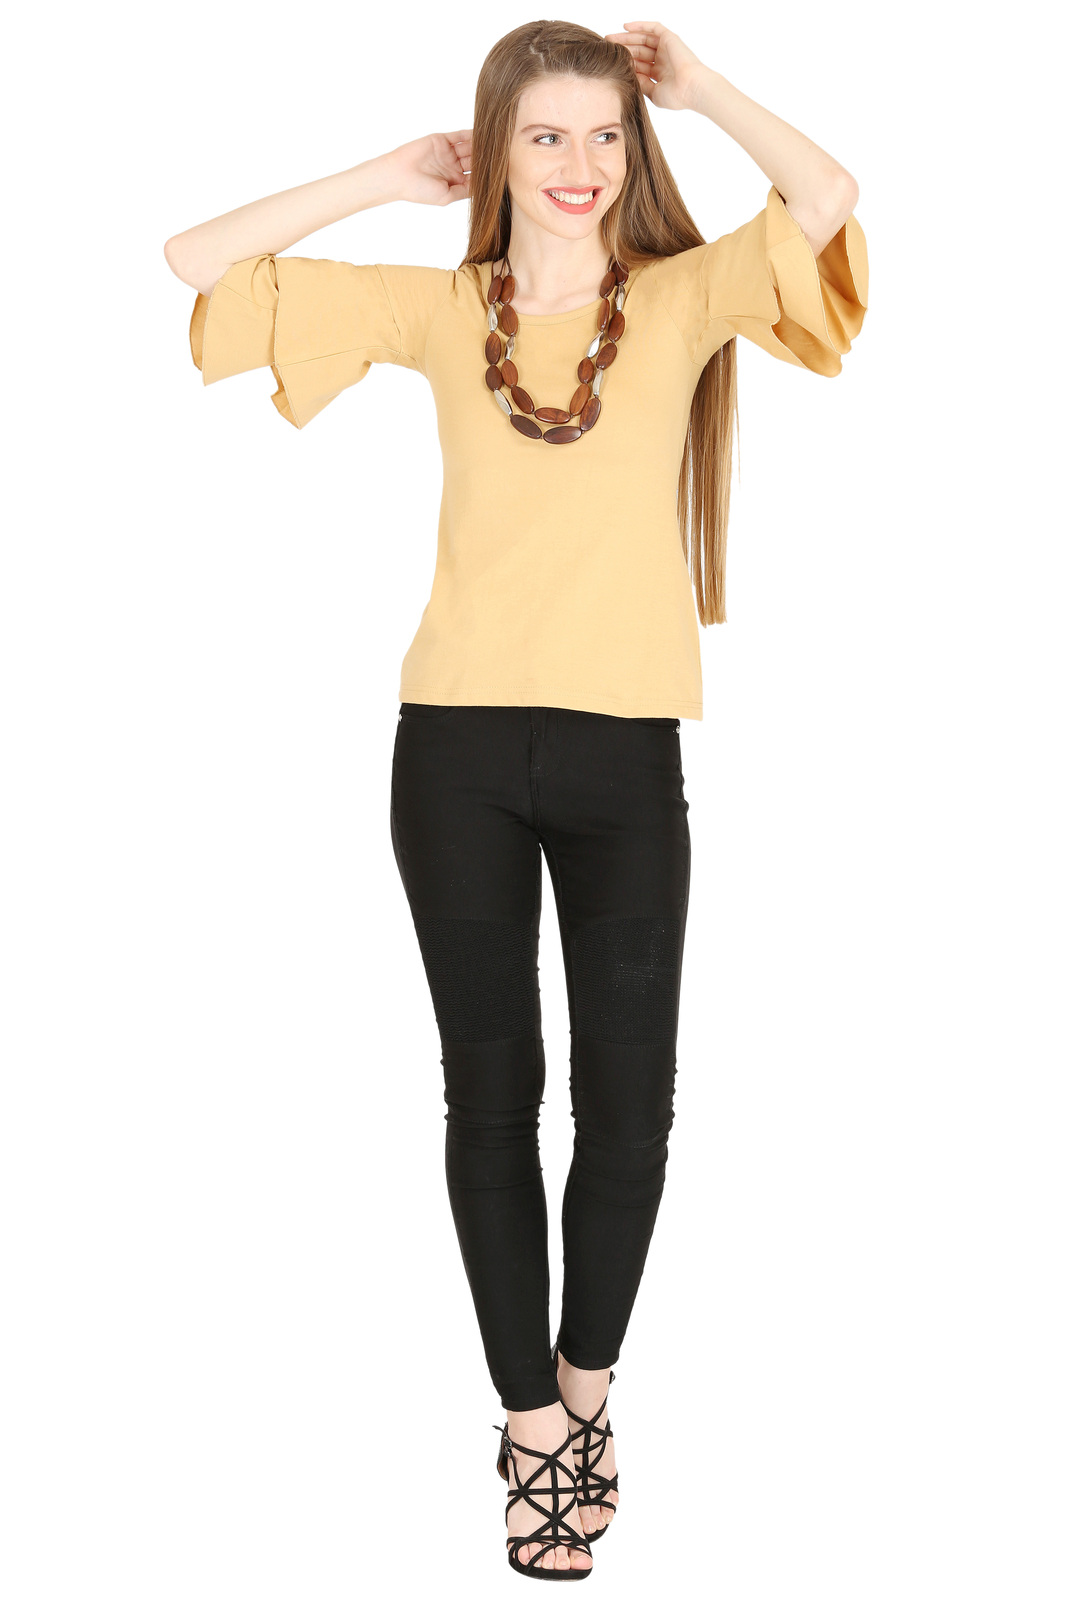 Tops for Women Beige Cotton Ruffle Bell Sleeves tops Chistmas gifts for her image 2